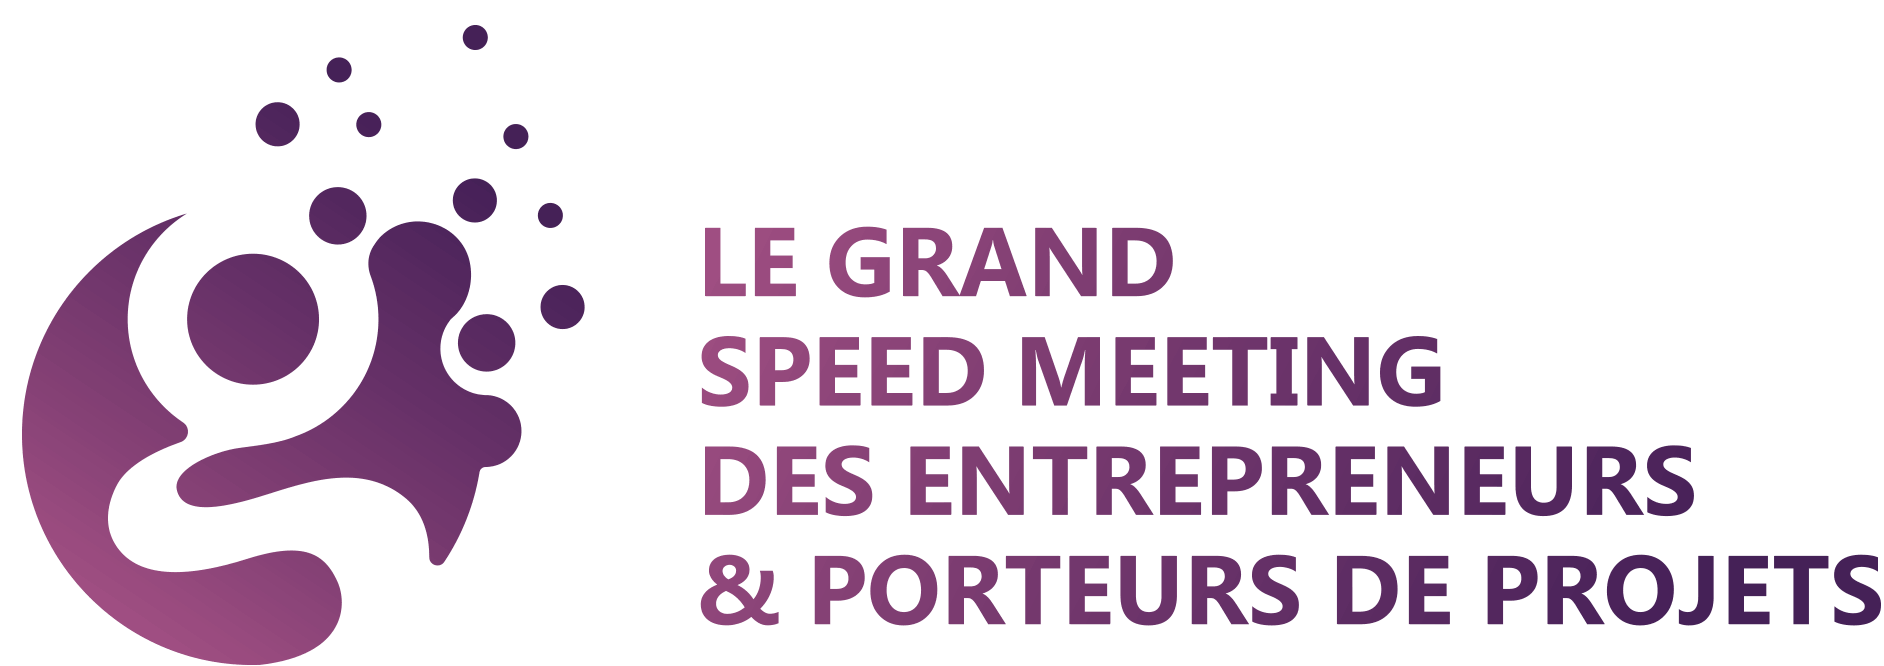 GRAND SPEED MEETING DES ENTREPRENEURS